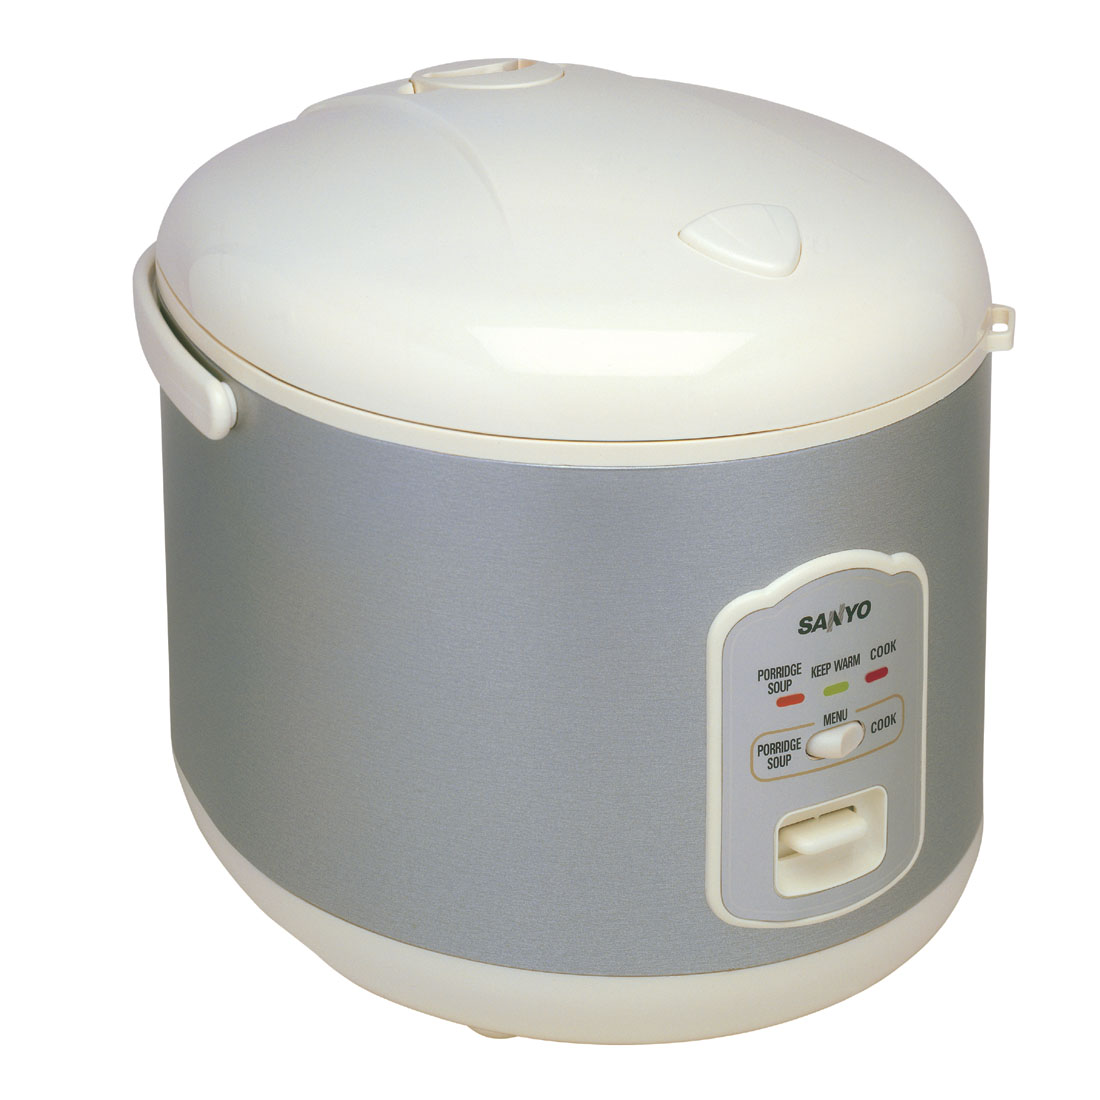 Sanyo ecjn100w white rice cooker 10cup soup function